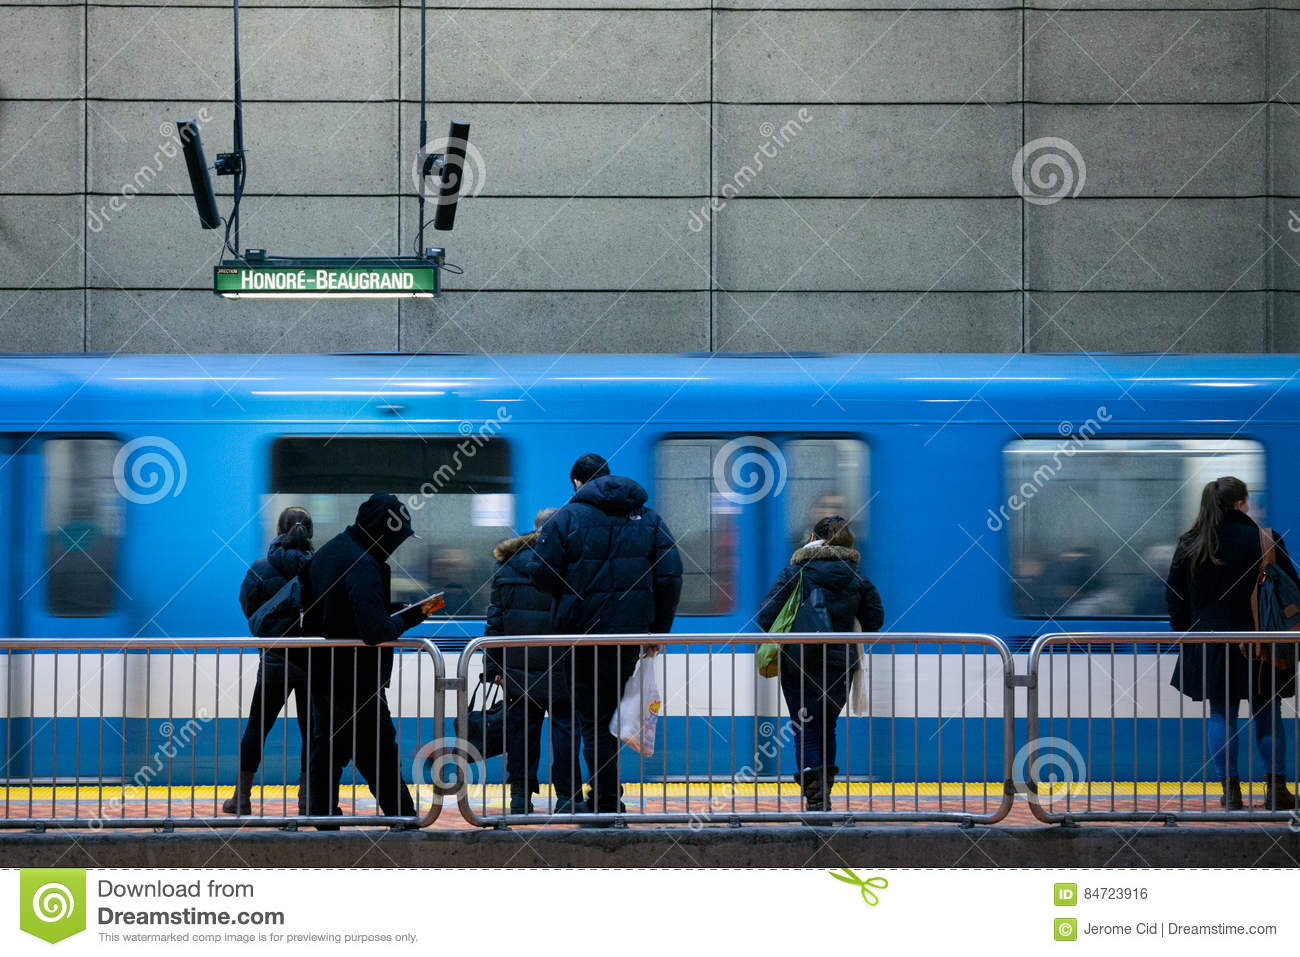 MONTREAL, CANADA - DECEMBER 29, 2016: People waiting for a Metro in Lionel Groulx station